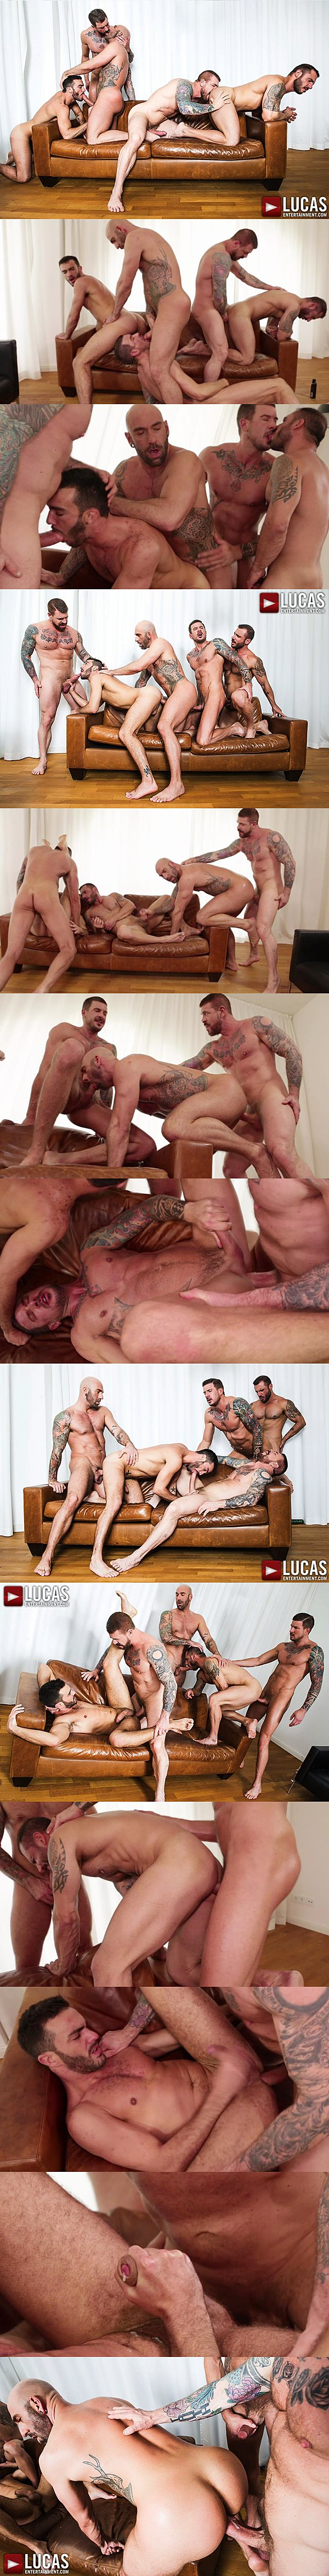 Rocco Steele barebacks Alejandro Alvarez, Dolf Dietrich, Drew Sebastian and Pedro Andreas in Jump into Rocco Steele's Breeding Party at Lucasentertainment 02